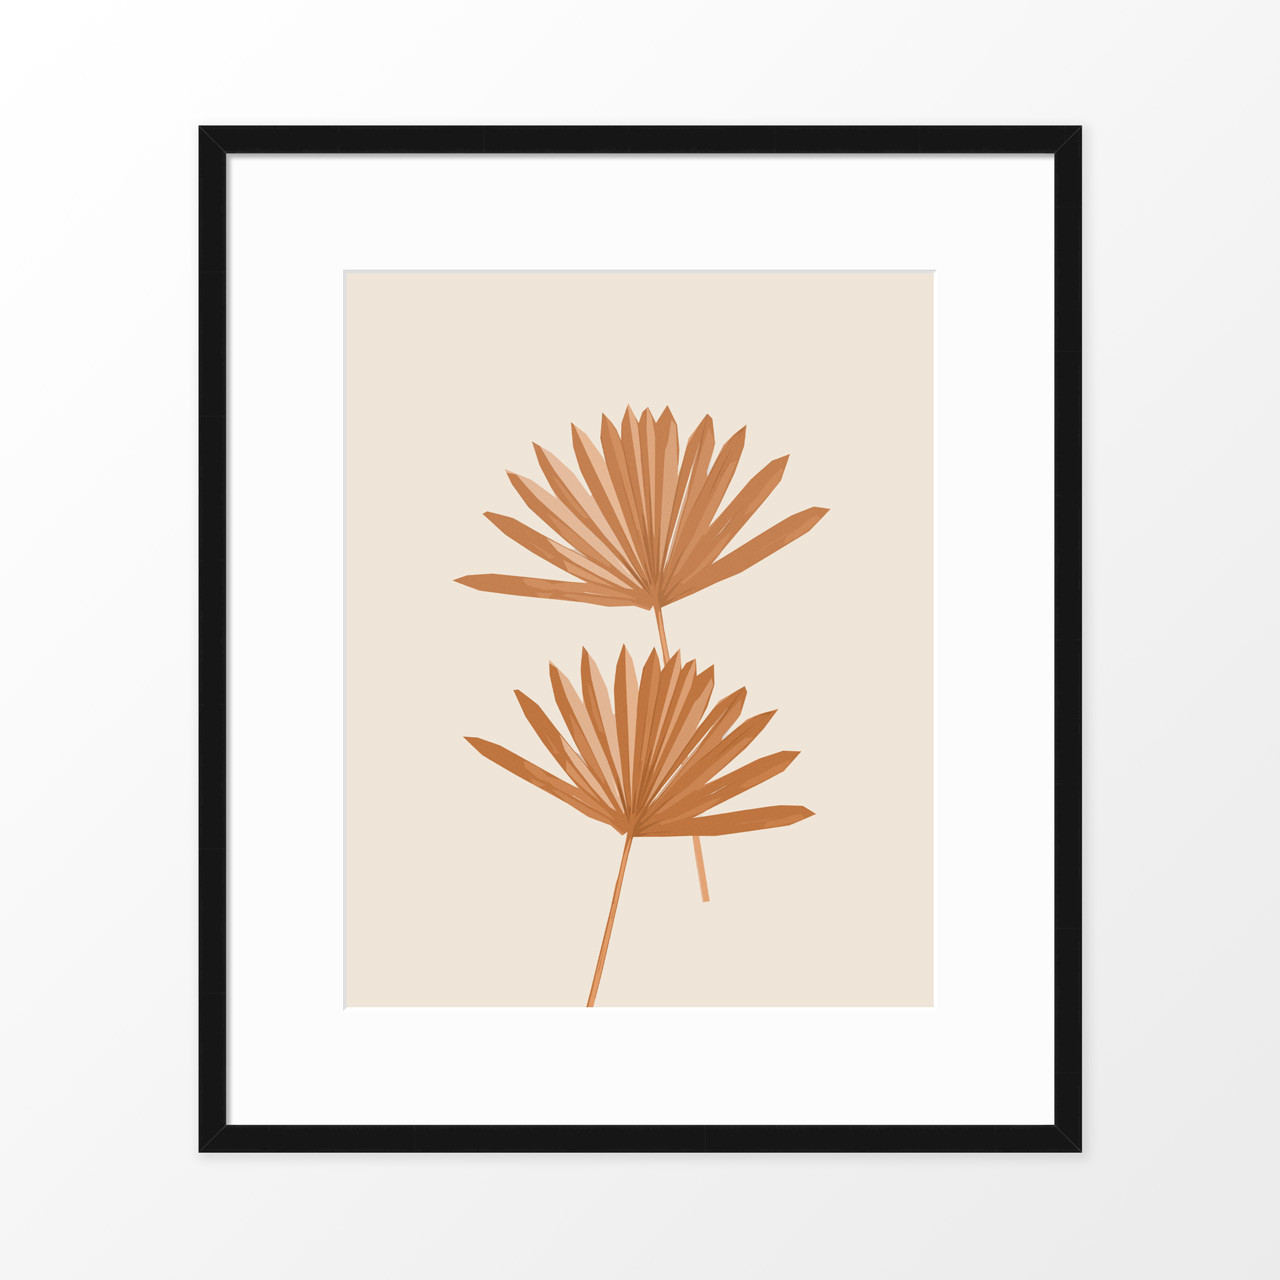 'Sun Palm II' in Sienna Abstract Leaf Art Print from The Printed Home